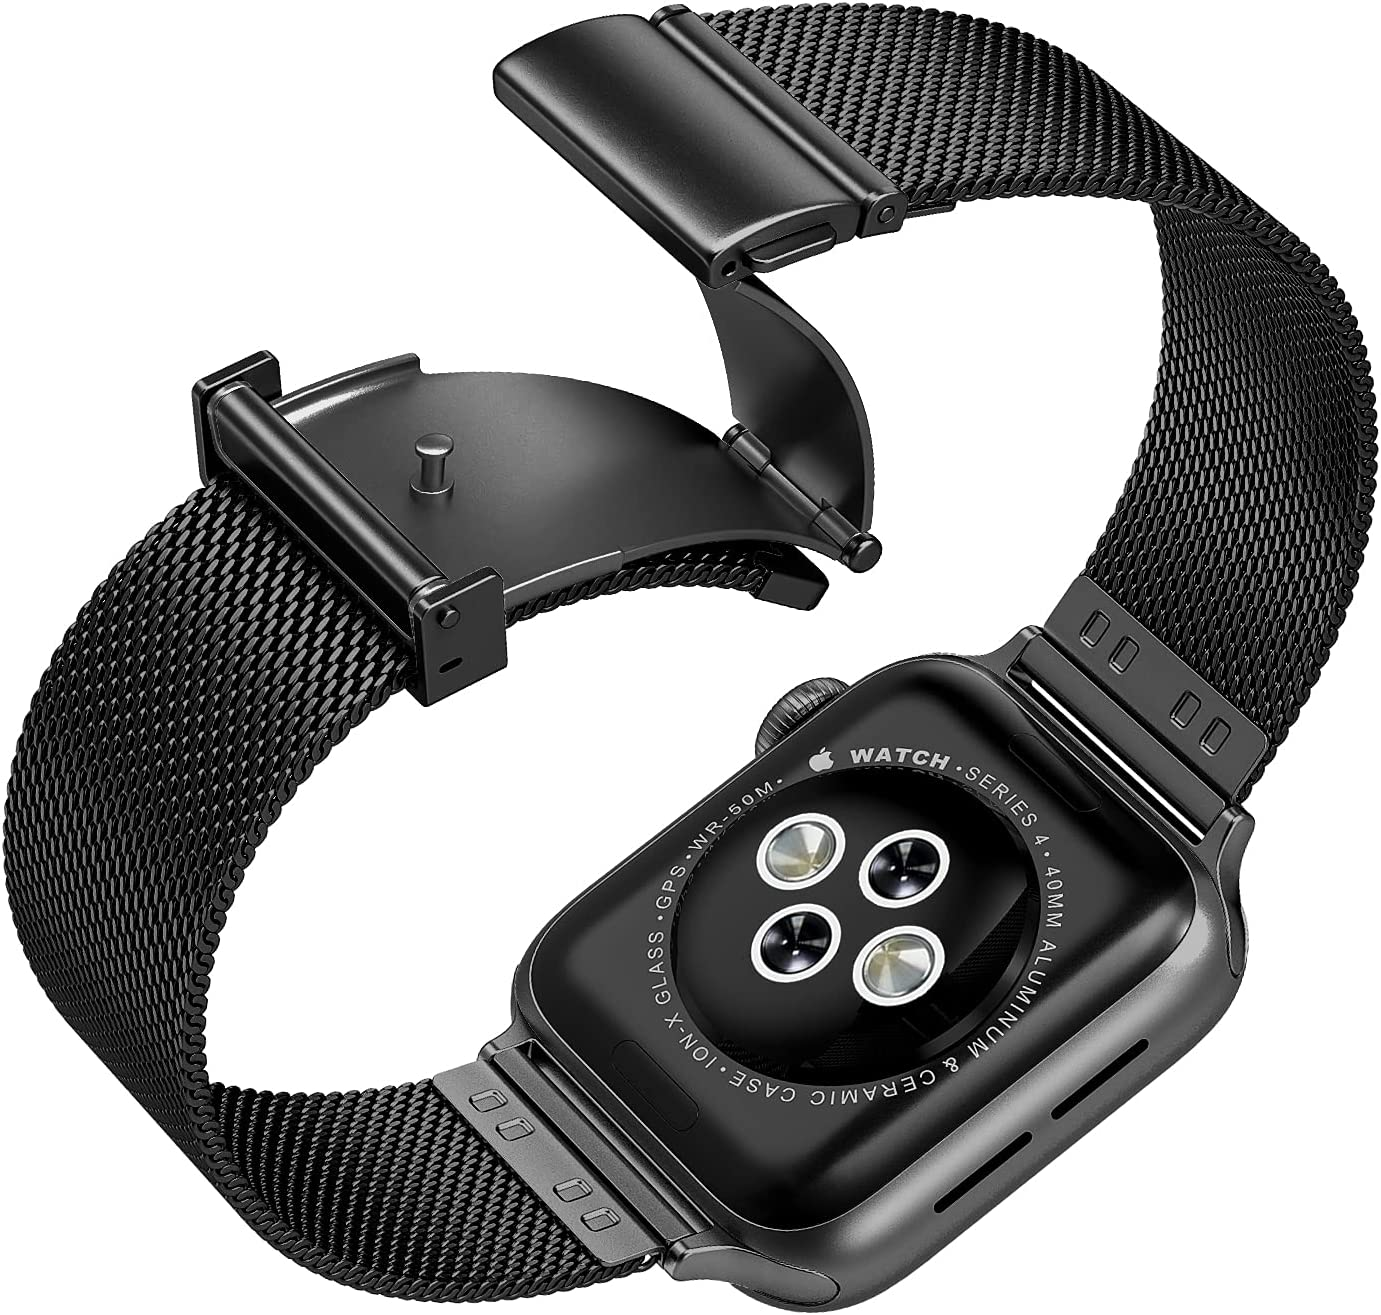 Compatible with Apple Watch Band 42mm 44mm,Upgraded Version Stainless Steel Bands Business Replacement iWatch Strap for Apple Watch Series 6/5/4/3/2/1/SE Sport Edition Women Men, Black